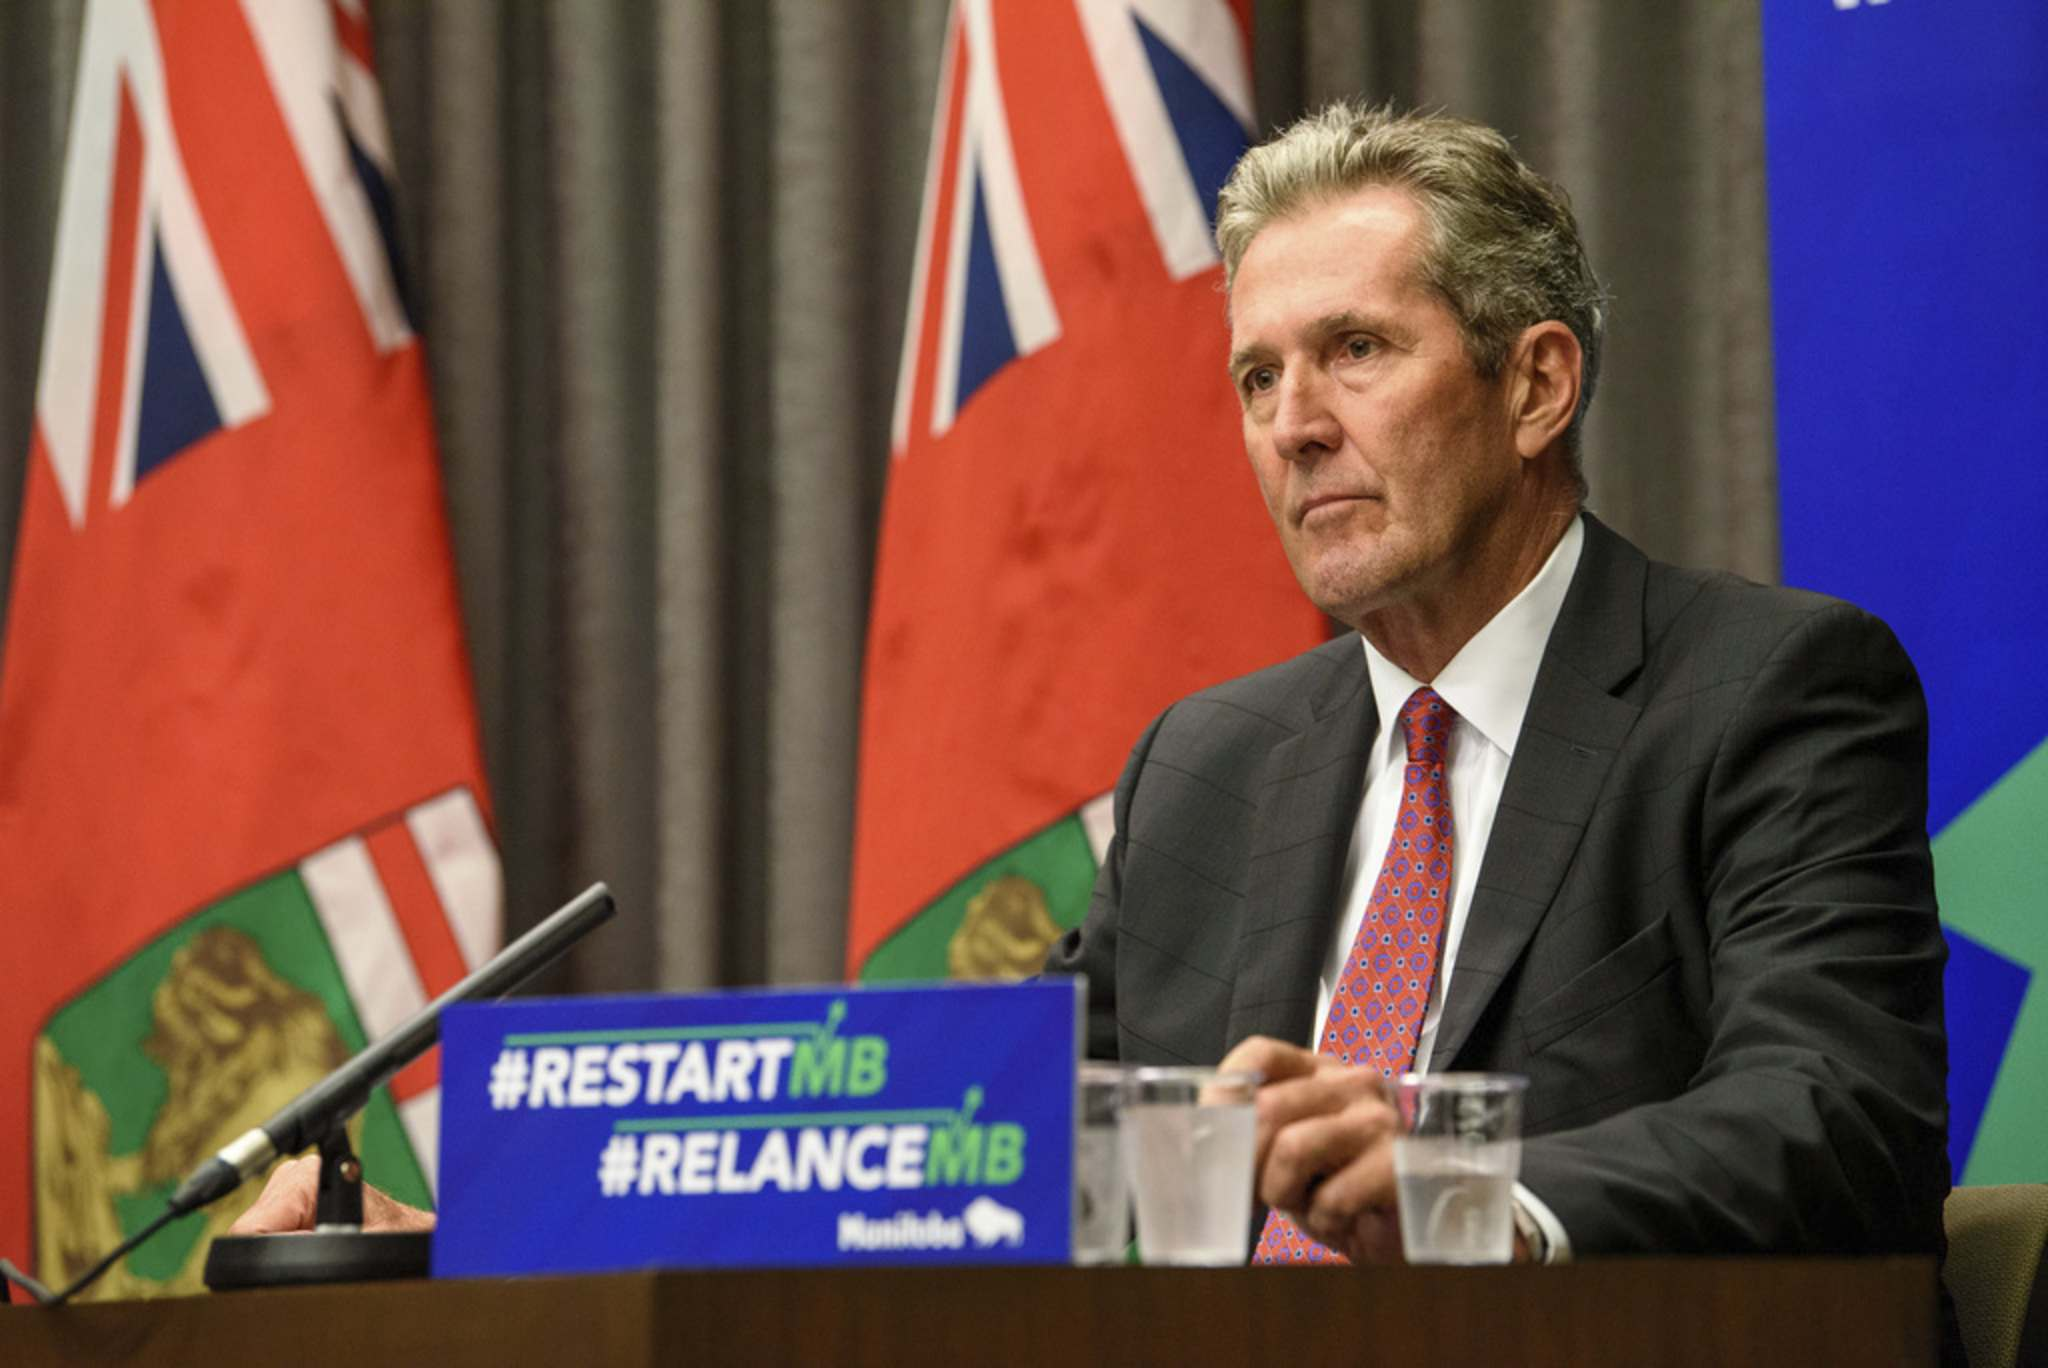 JESSE BOILY / WINNIPEG FREE PRESS</p><p>Premier Brian Pallister held a press conference at the Manitoba legislature building on Tuesday to release the province's most recent fiscal update.</p>